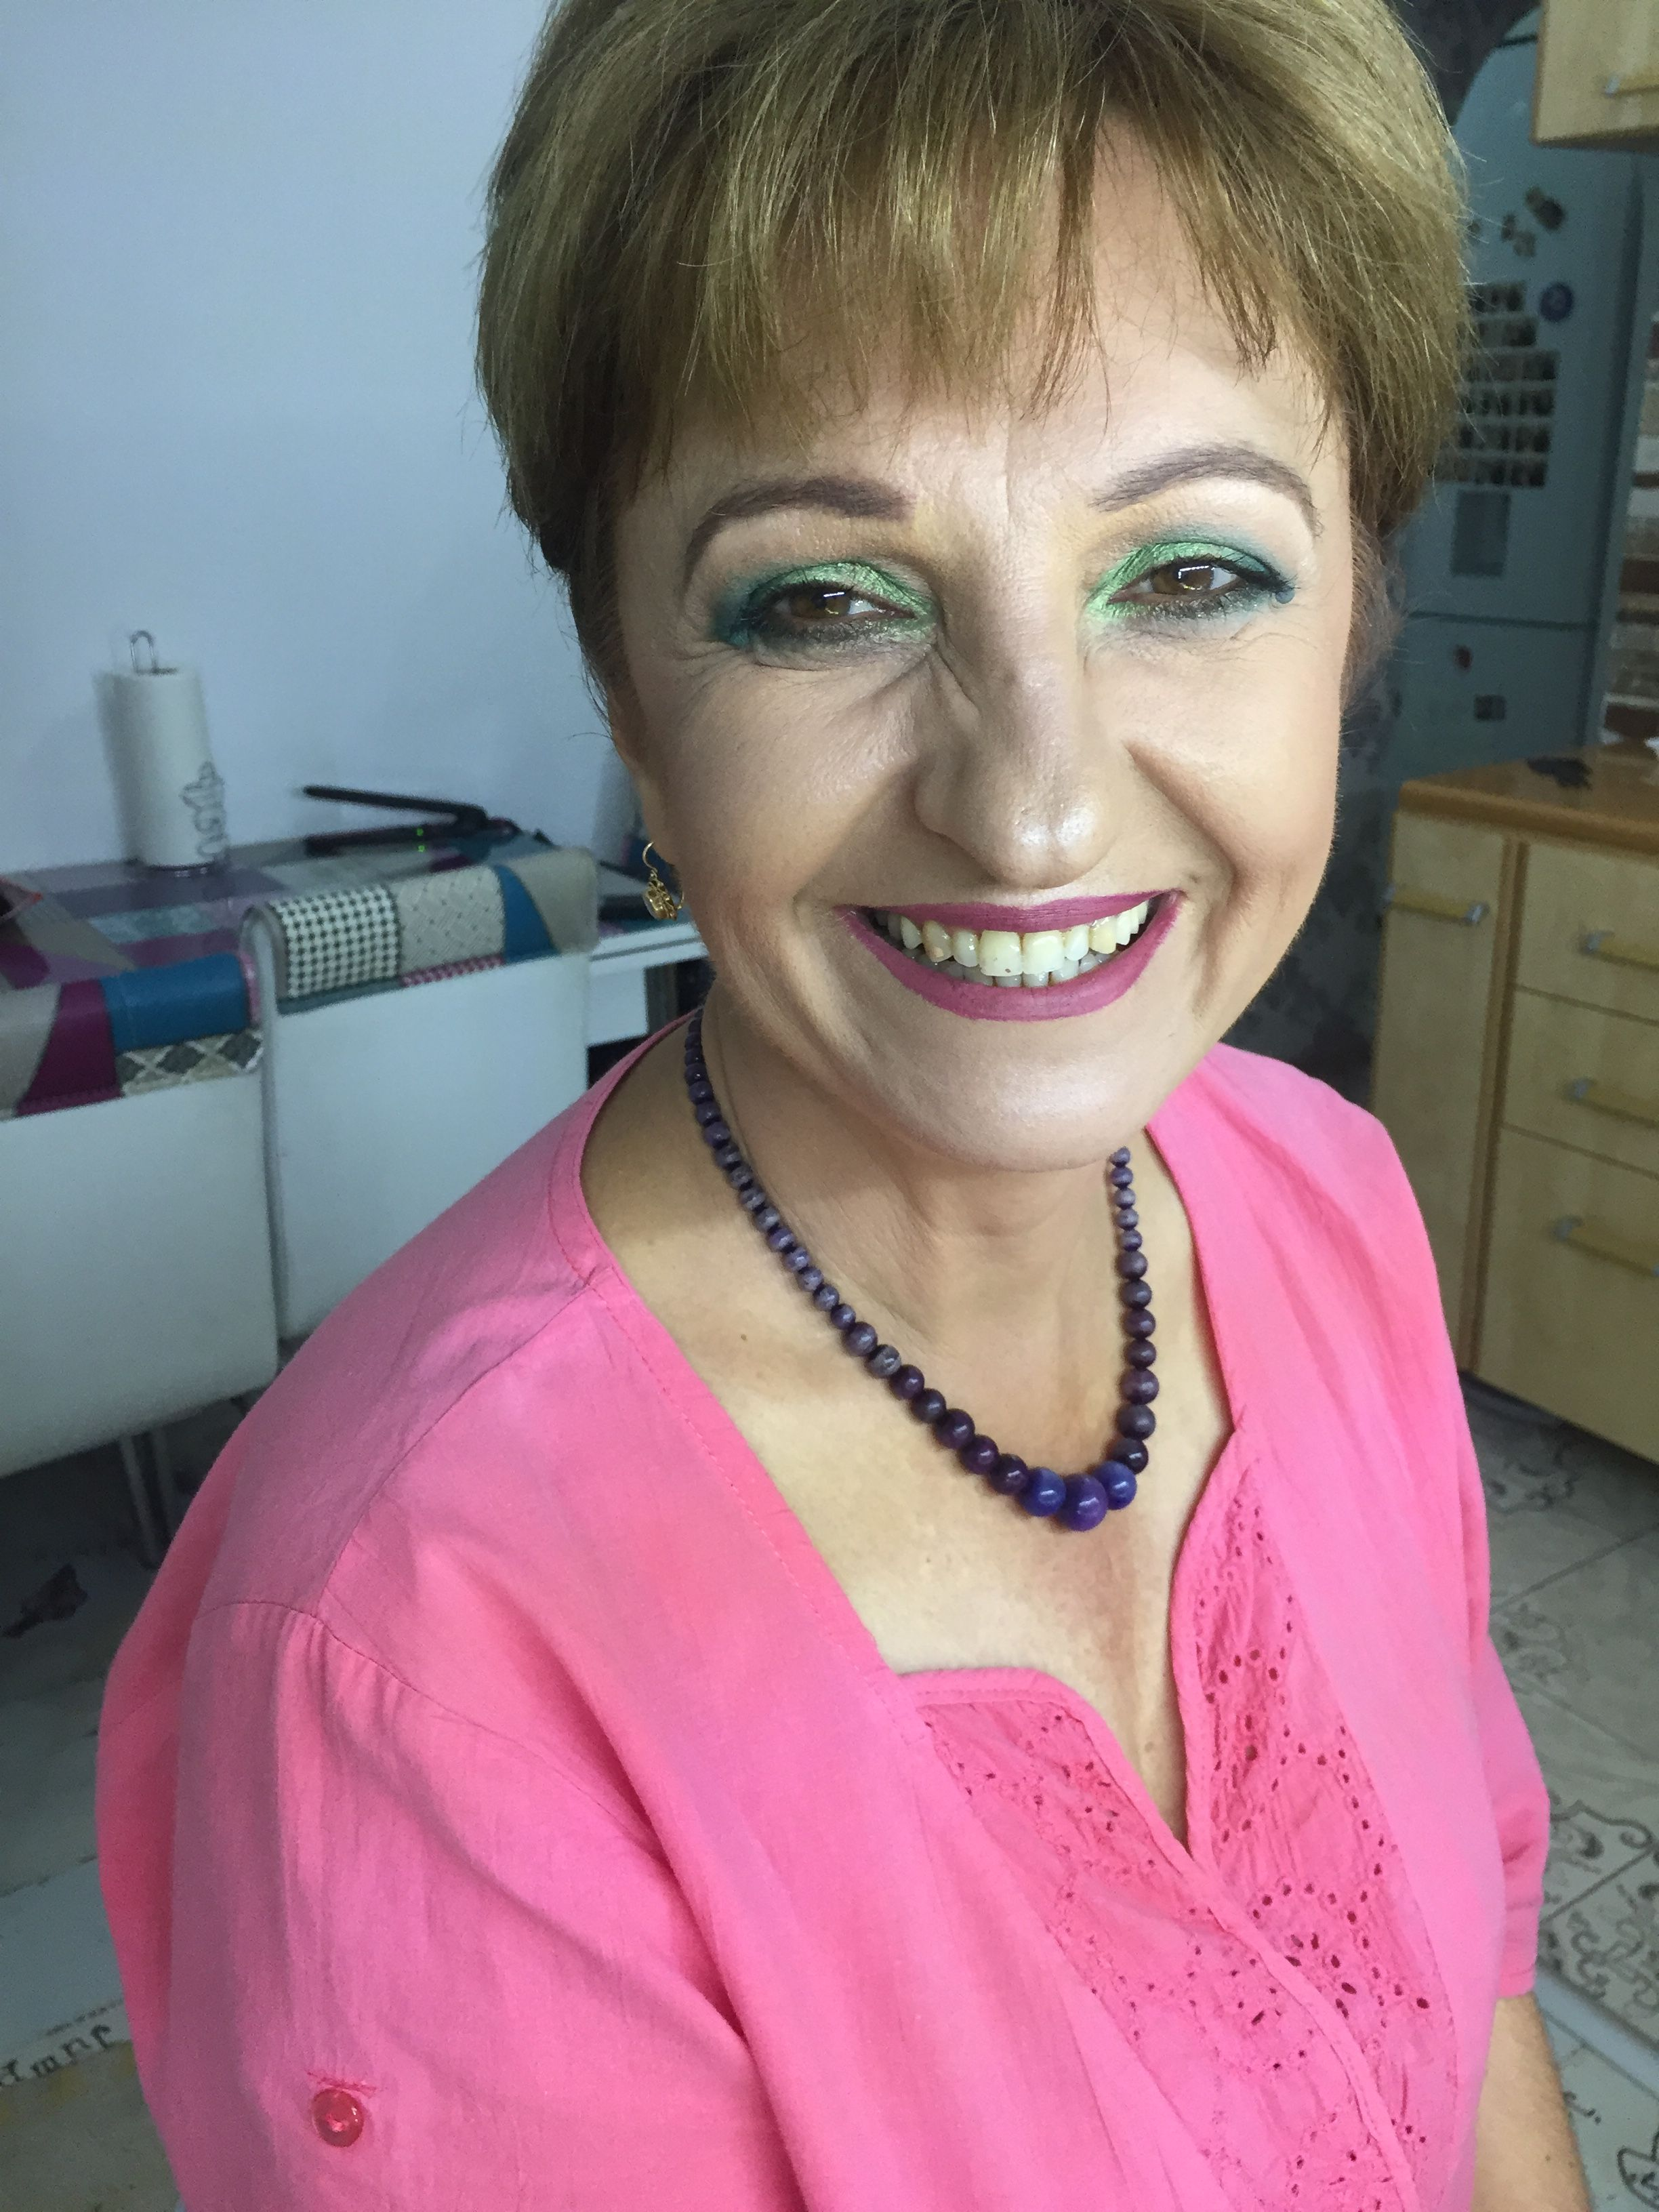 Beautiful Smile , green makeup